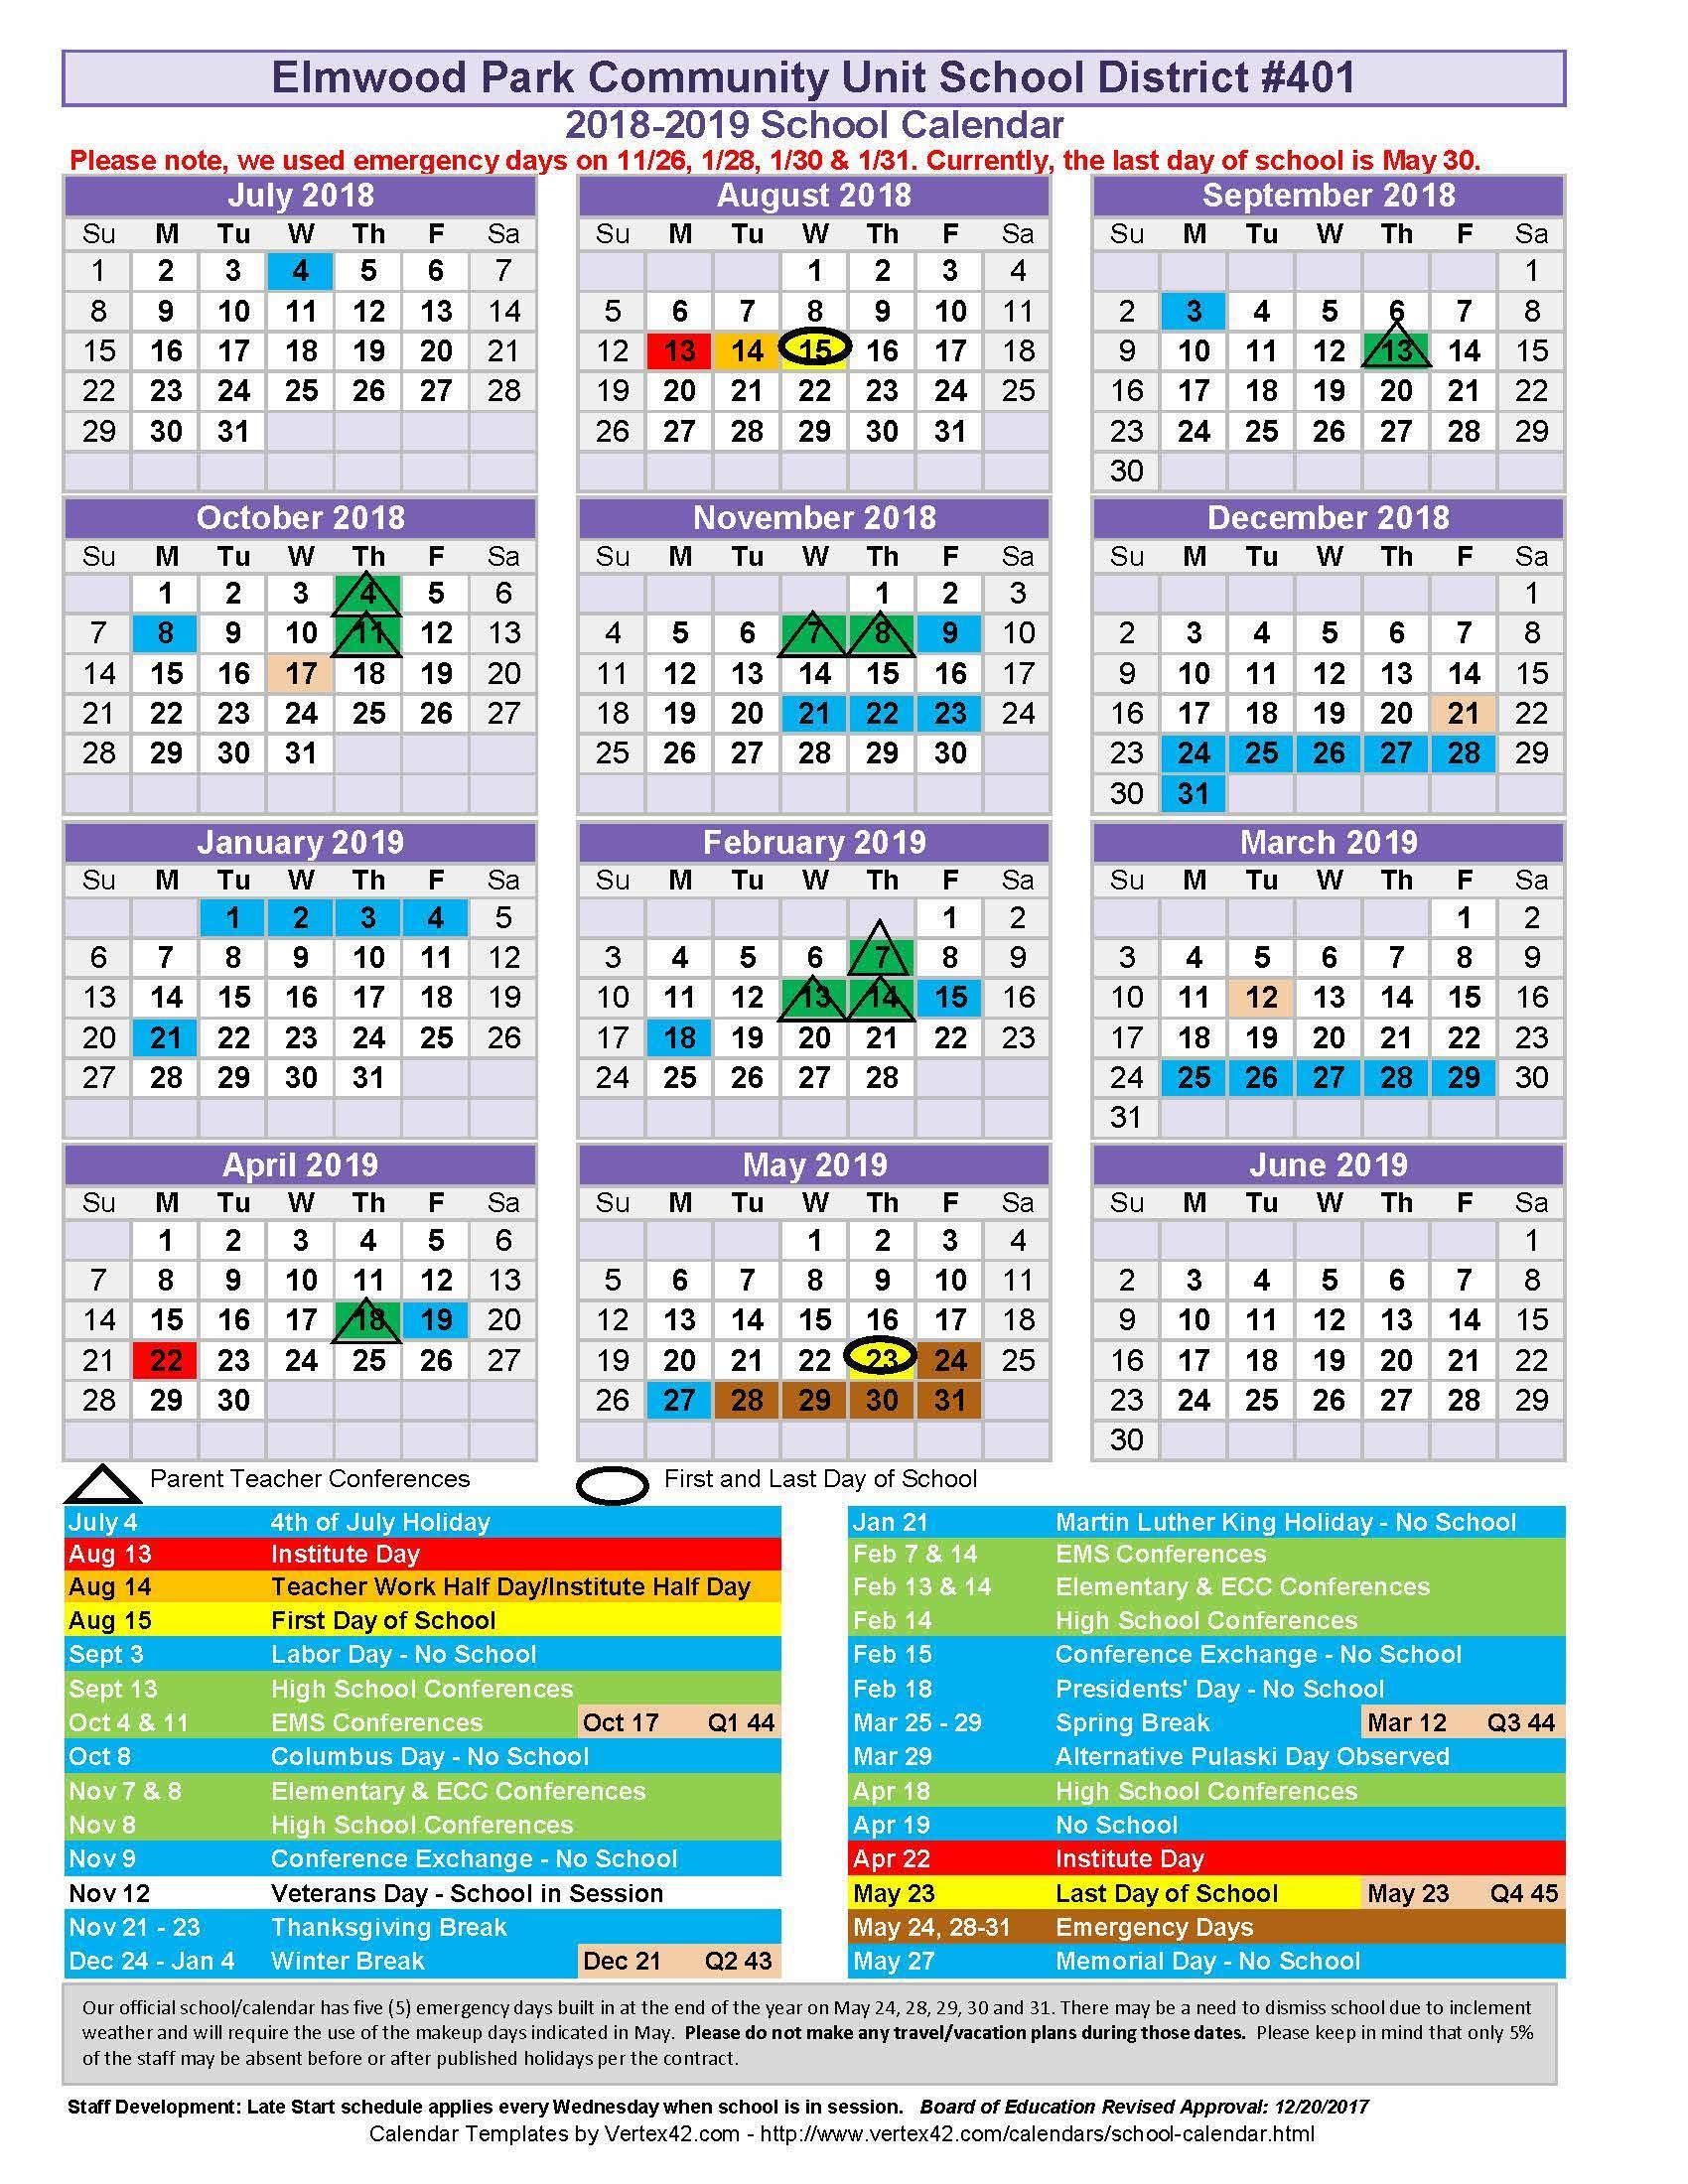 2018-19 revised school year calendar